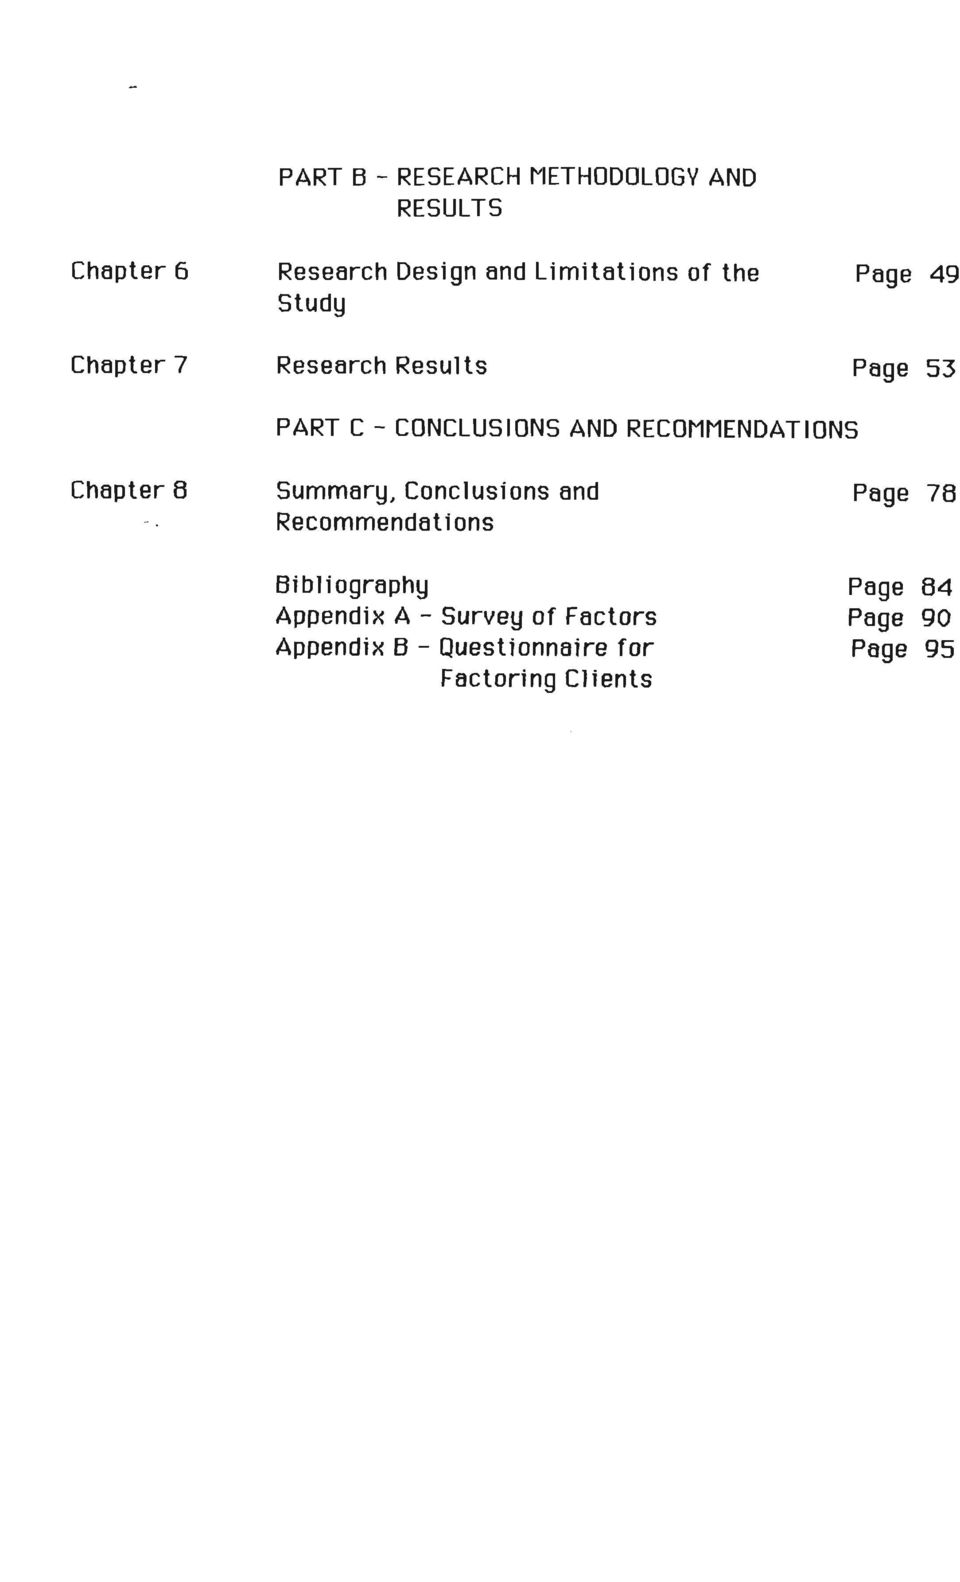 RECOMMENDATIONS Chapter 8 Summary, Conclusions and Recommendations Bibliography Appendix